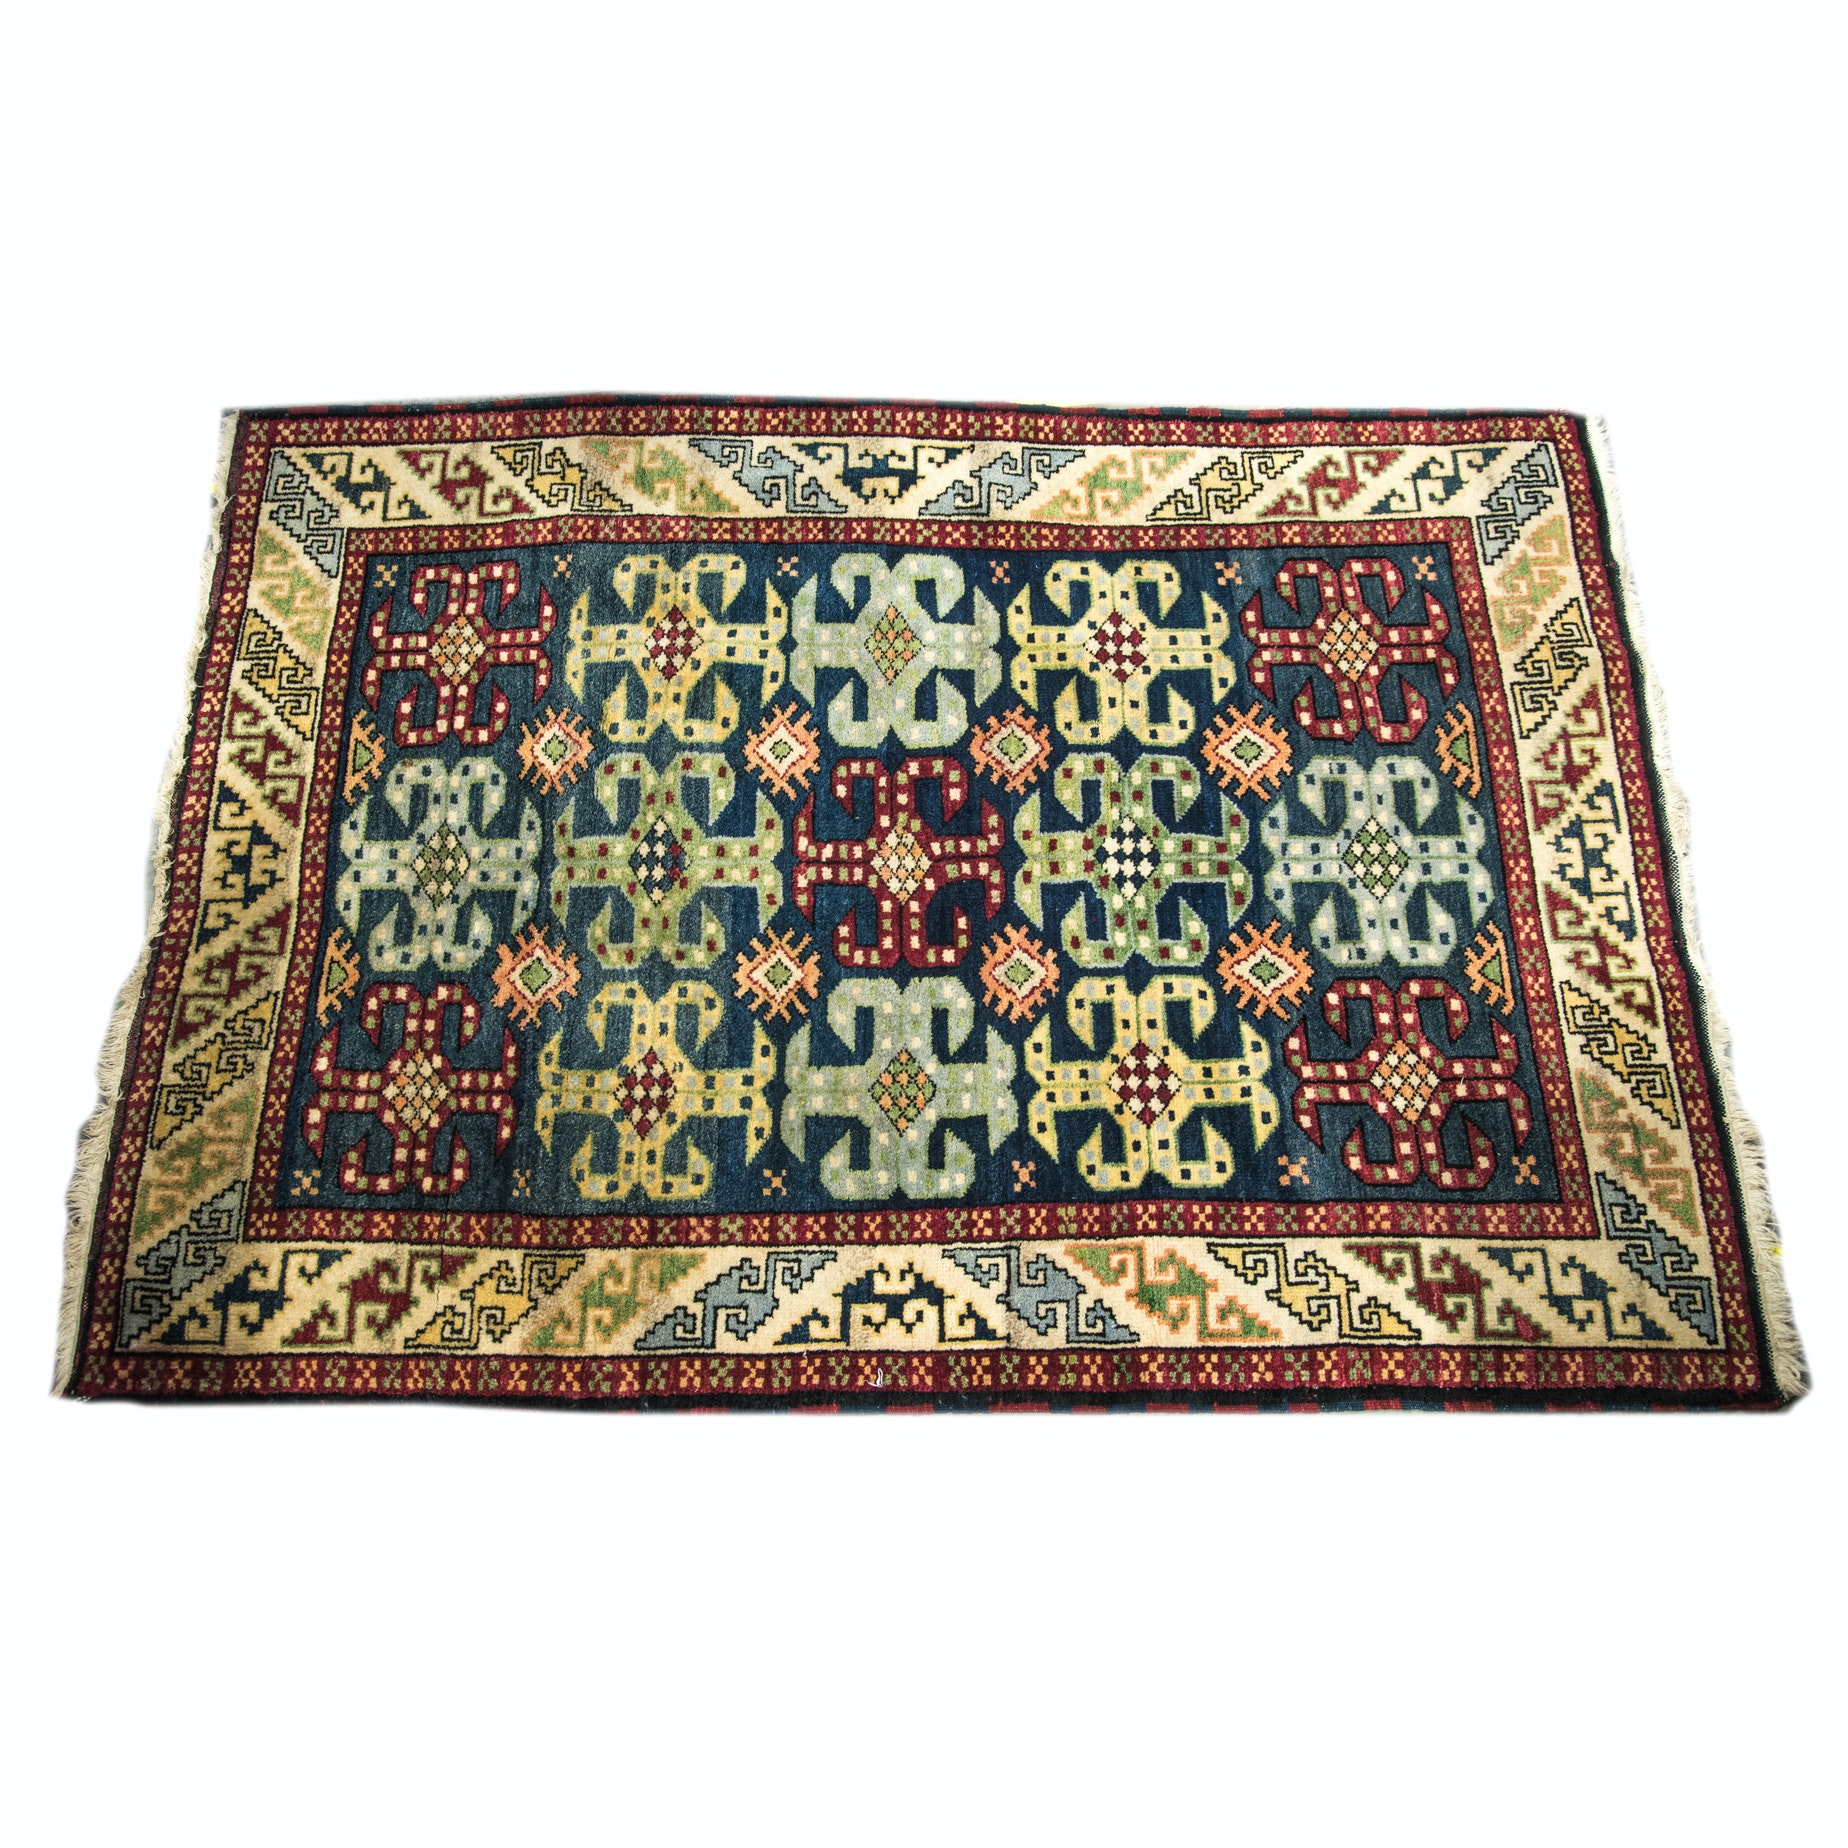 Hand-Knotted Caucasian-Style Wool Accent Rug